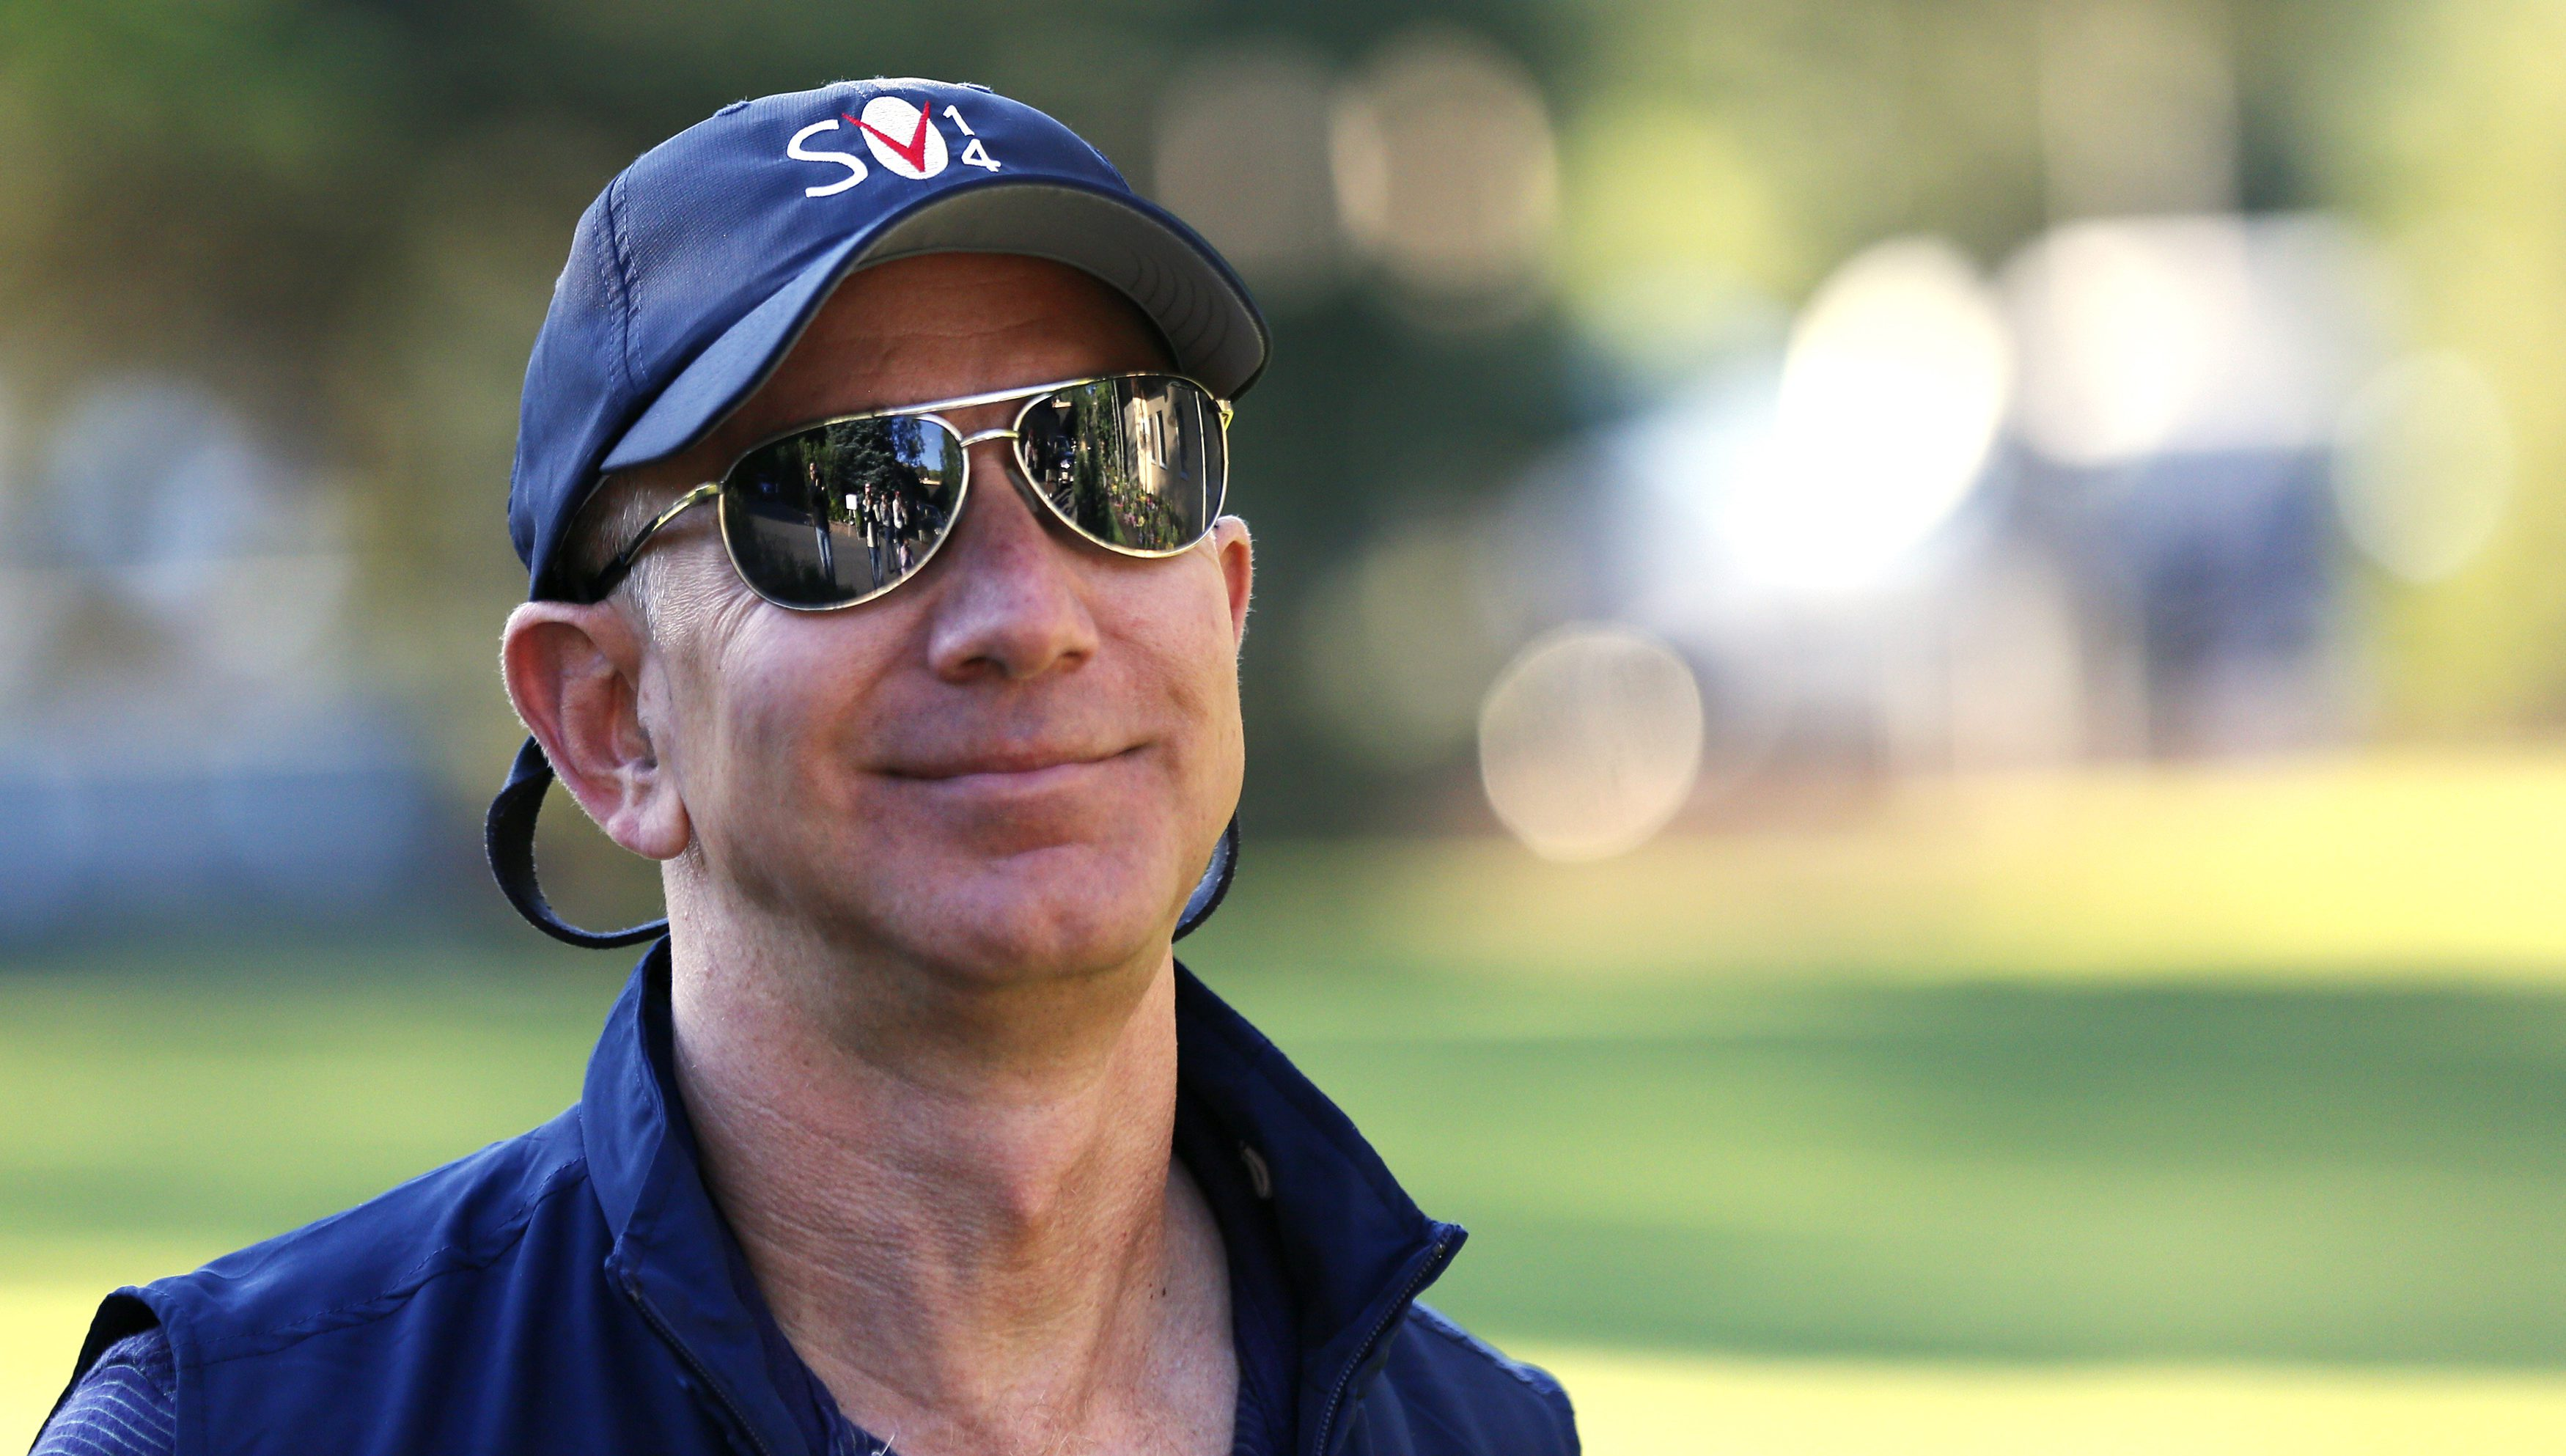 Morgan Stanley: Why Amazon (AMZN) could be worth $1 trillion